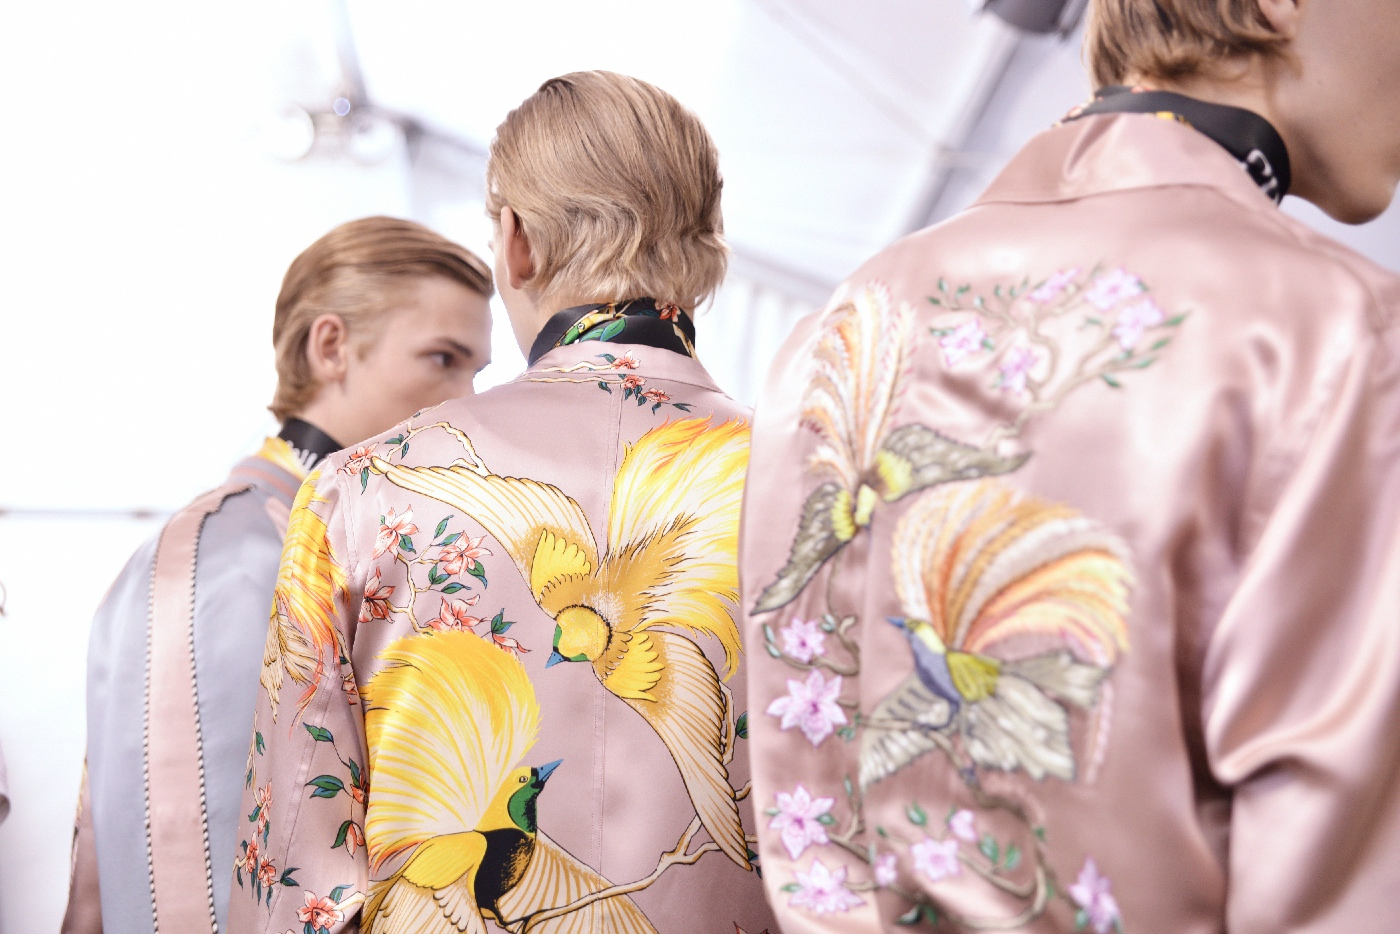 Backstage at the Louis Vuitton Menswear Spring Summer 2016 Show 16